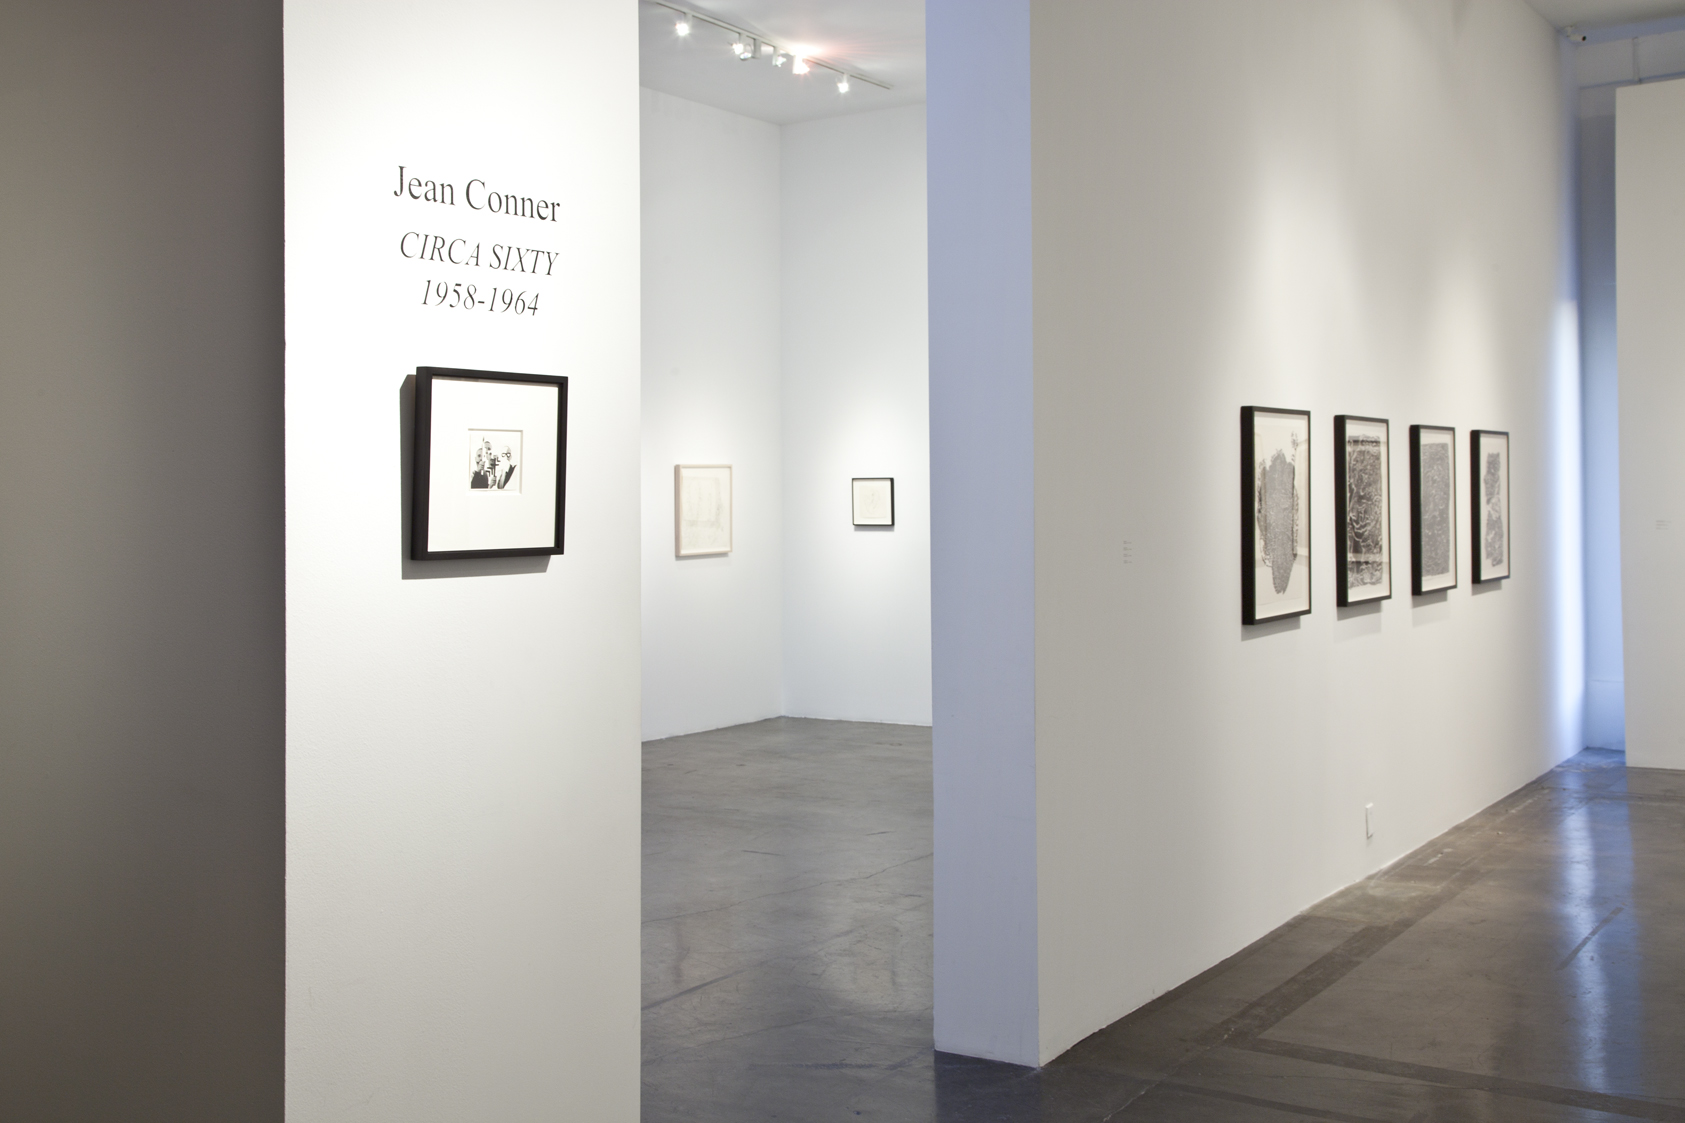 CIRCA SIXTY: Bruce Conner & Jean Conner 1958 to 1964,  November 11, 2011– January 4, 2012